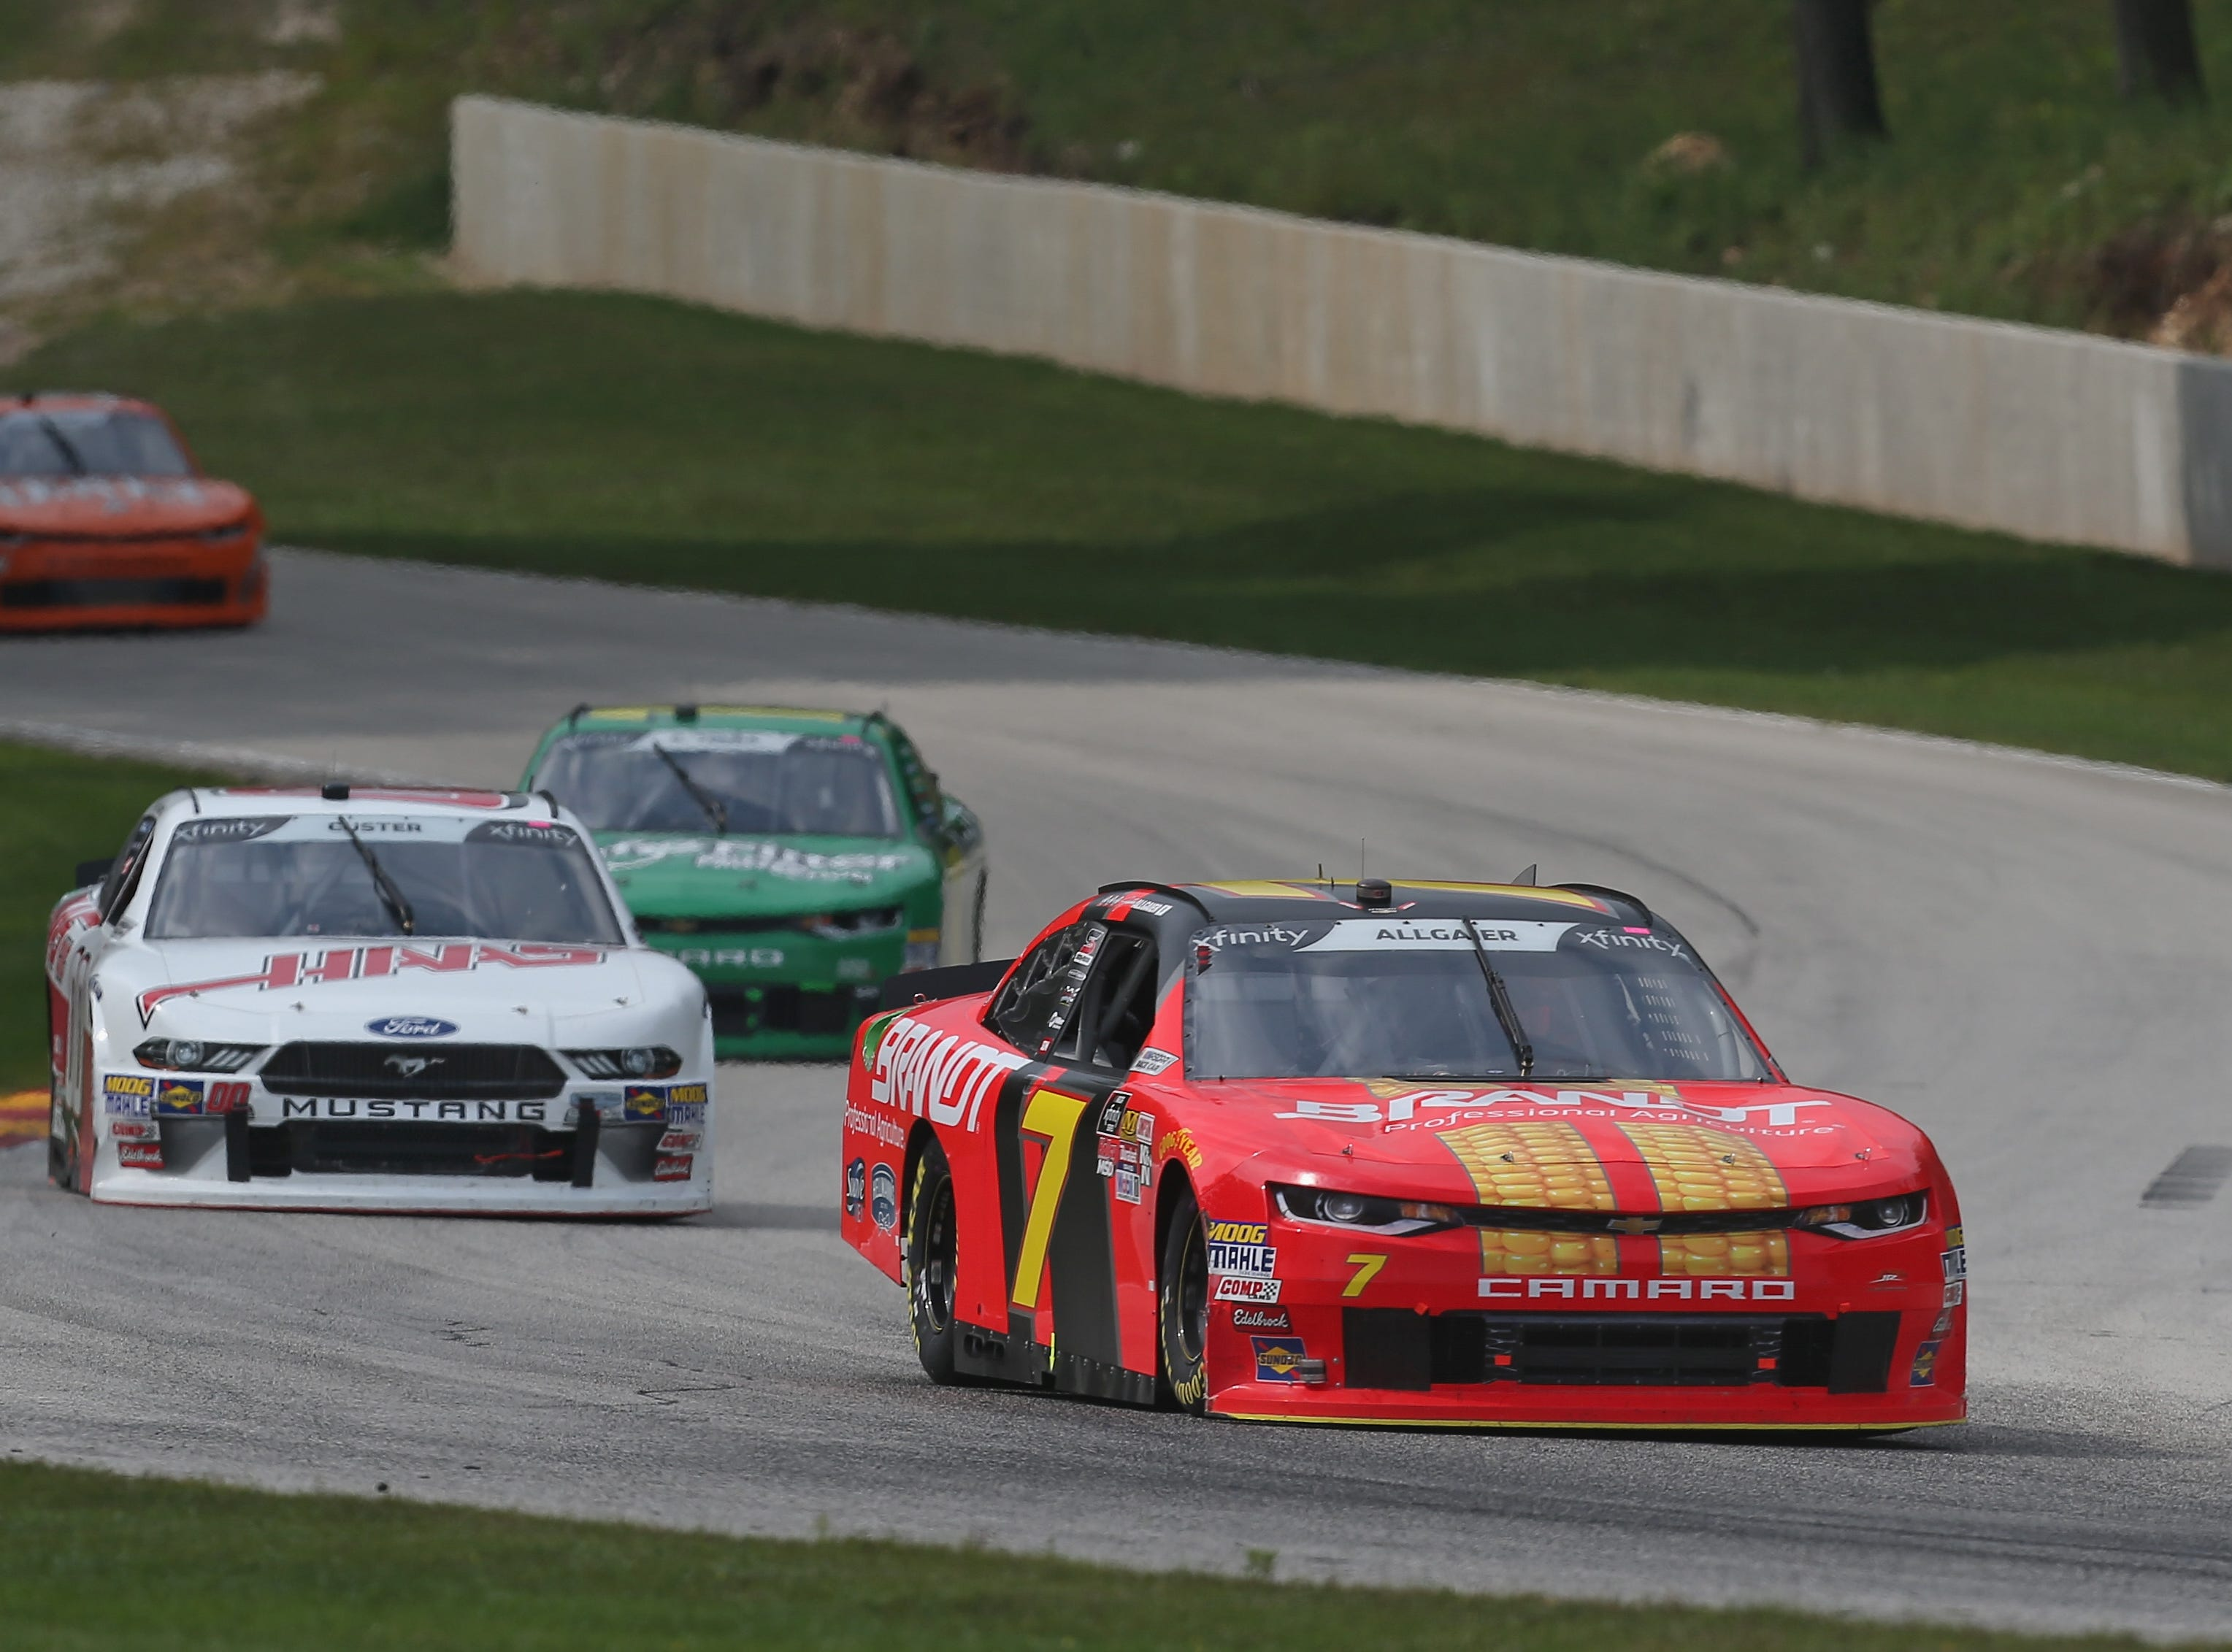 ELKHART LAKE, WI - AUGUST 25:  Justin Allgaier, driver of the #7 BRANDT Professional Agriculture Chevrolet, leads a pack of cars during the NASCAR Xfinity Series Johnsonville 180 at Road America on August 24, 2018 in Elkhart Lake, Wisconsin.  (Photo by Matt Sullivan/Getty Images)